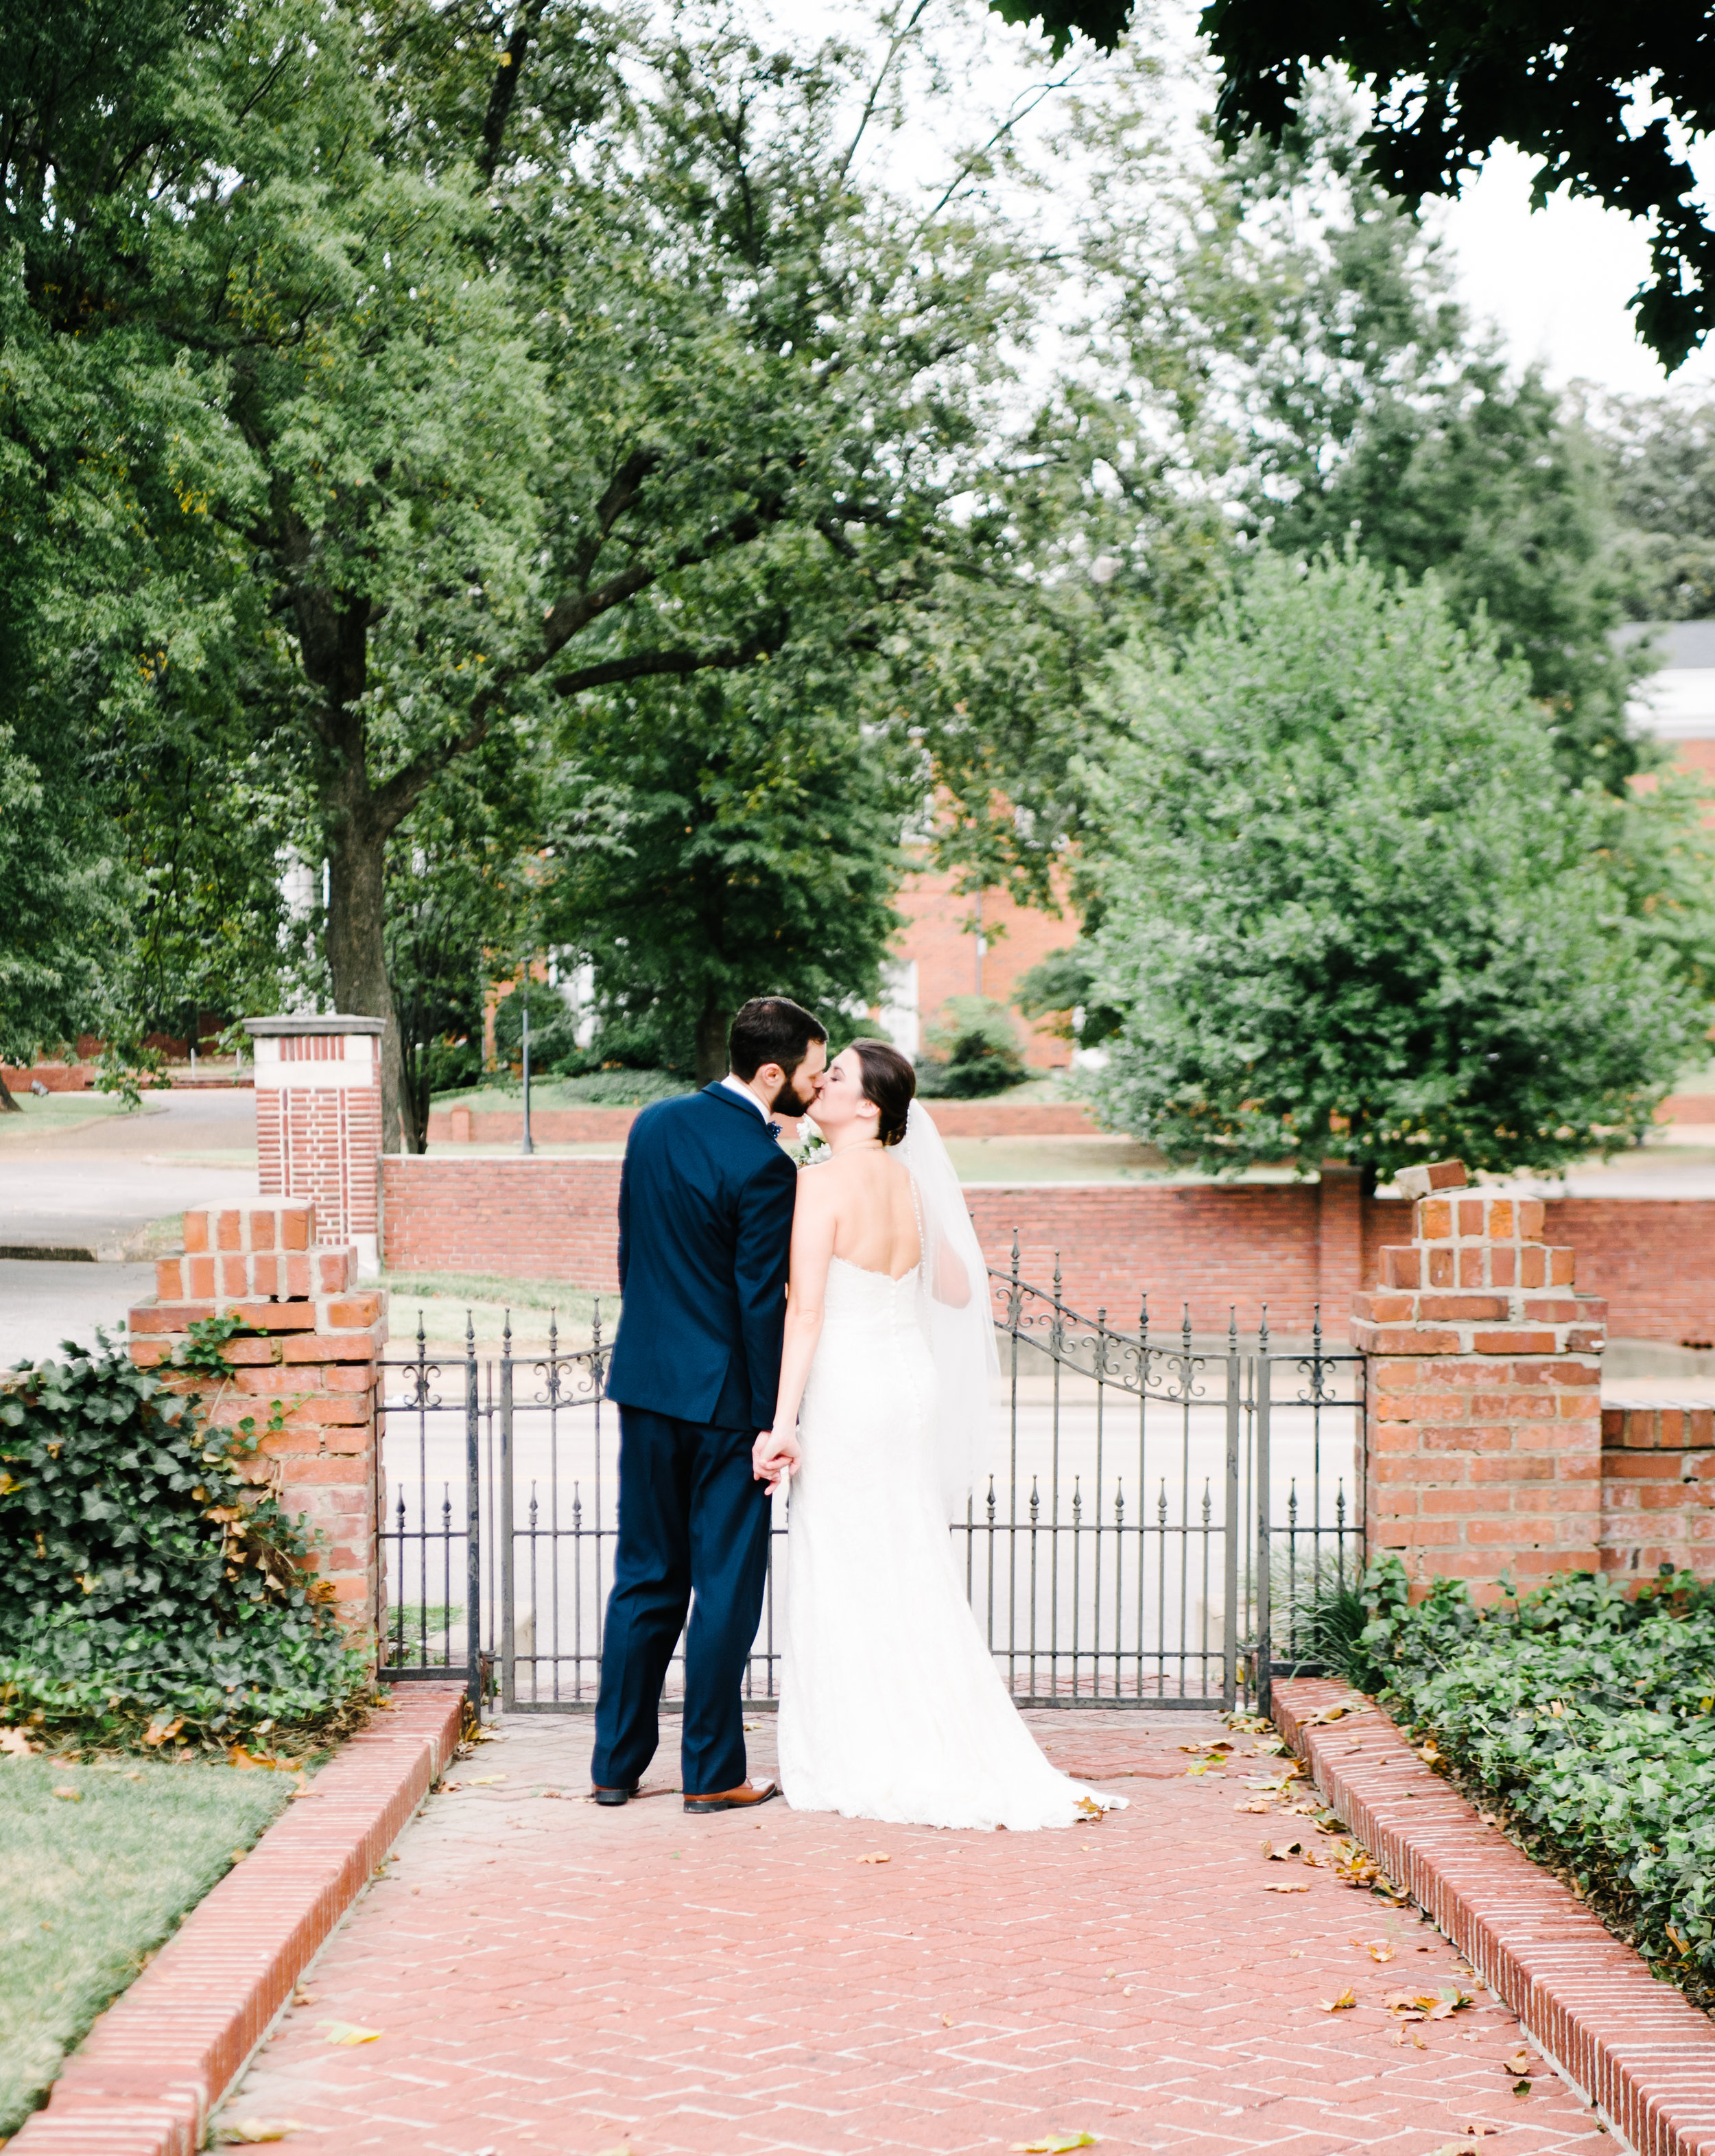 """""""As our wedding day nears, I'm reminded how God has blessed me so with you in my life. You are so loving, selfless, supportive and funny. I am so lucky I get to marry my best friend. I love you, Ross. - The future Mrs. Burton, A Thankful Bride."""""""